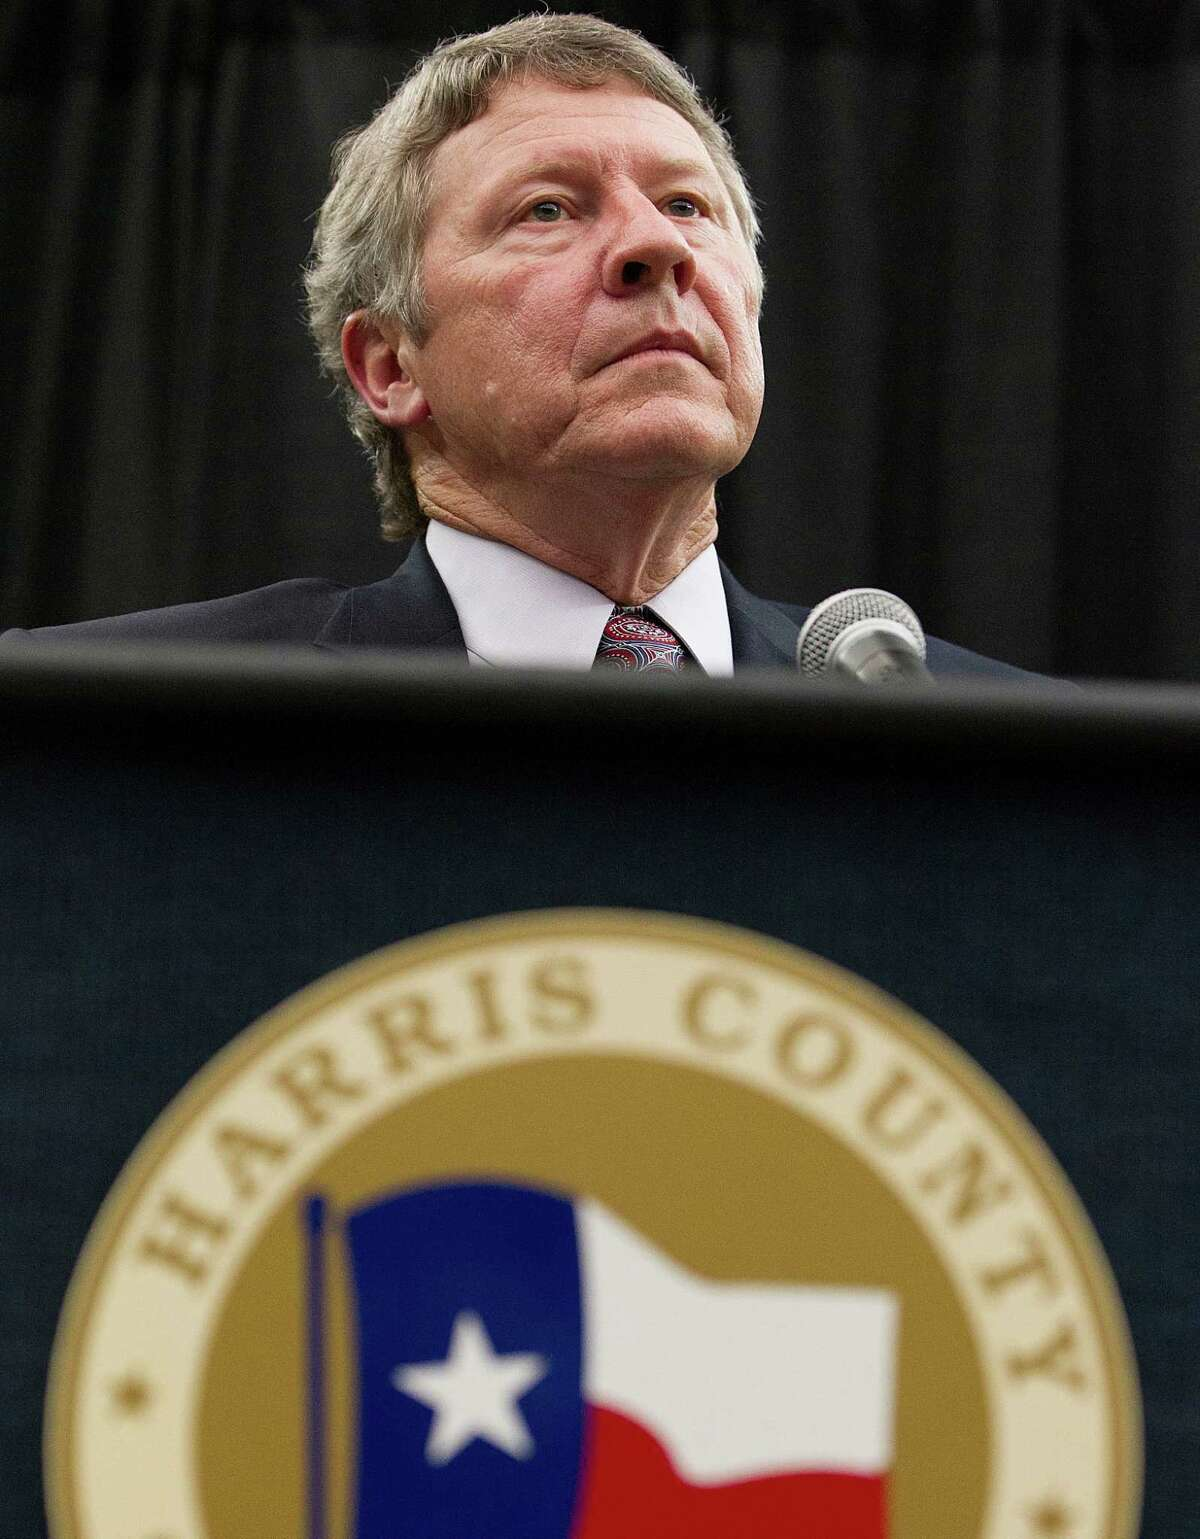 Harris County Judge Ed Emmett wants to be remembered for improving mental-health care in Harris County.